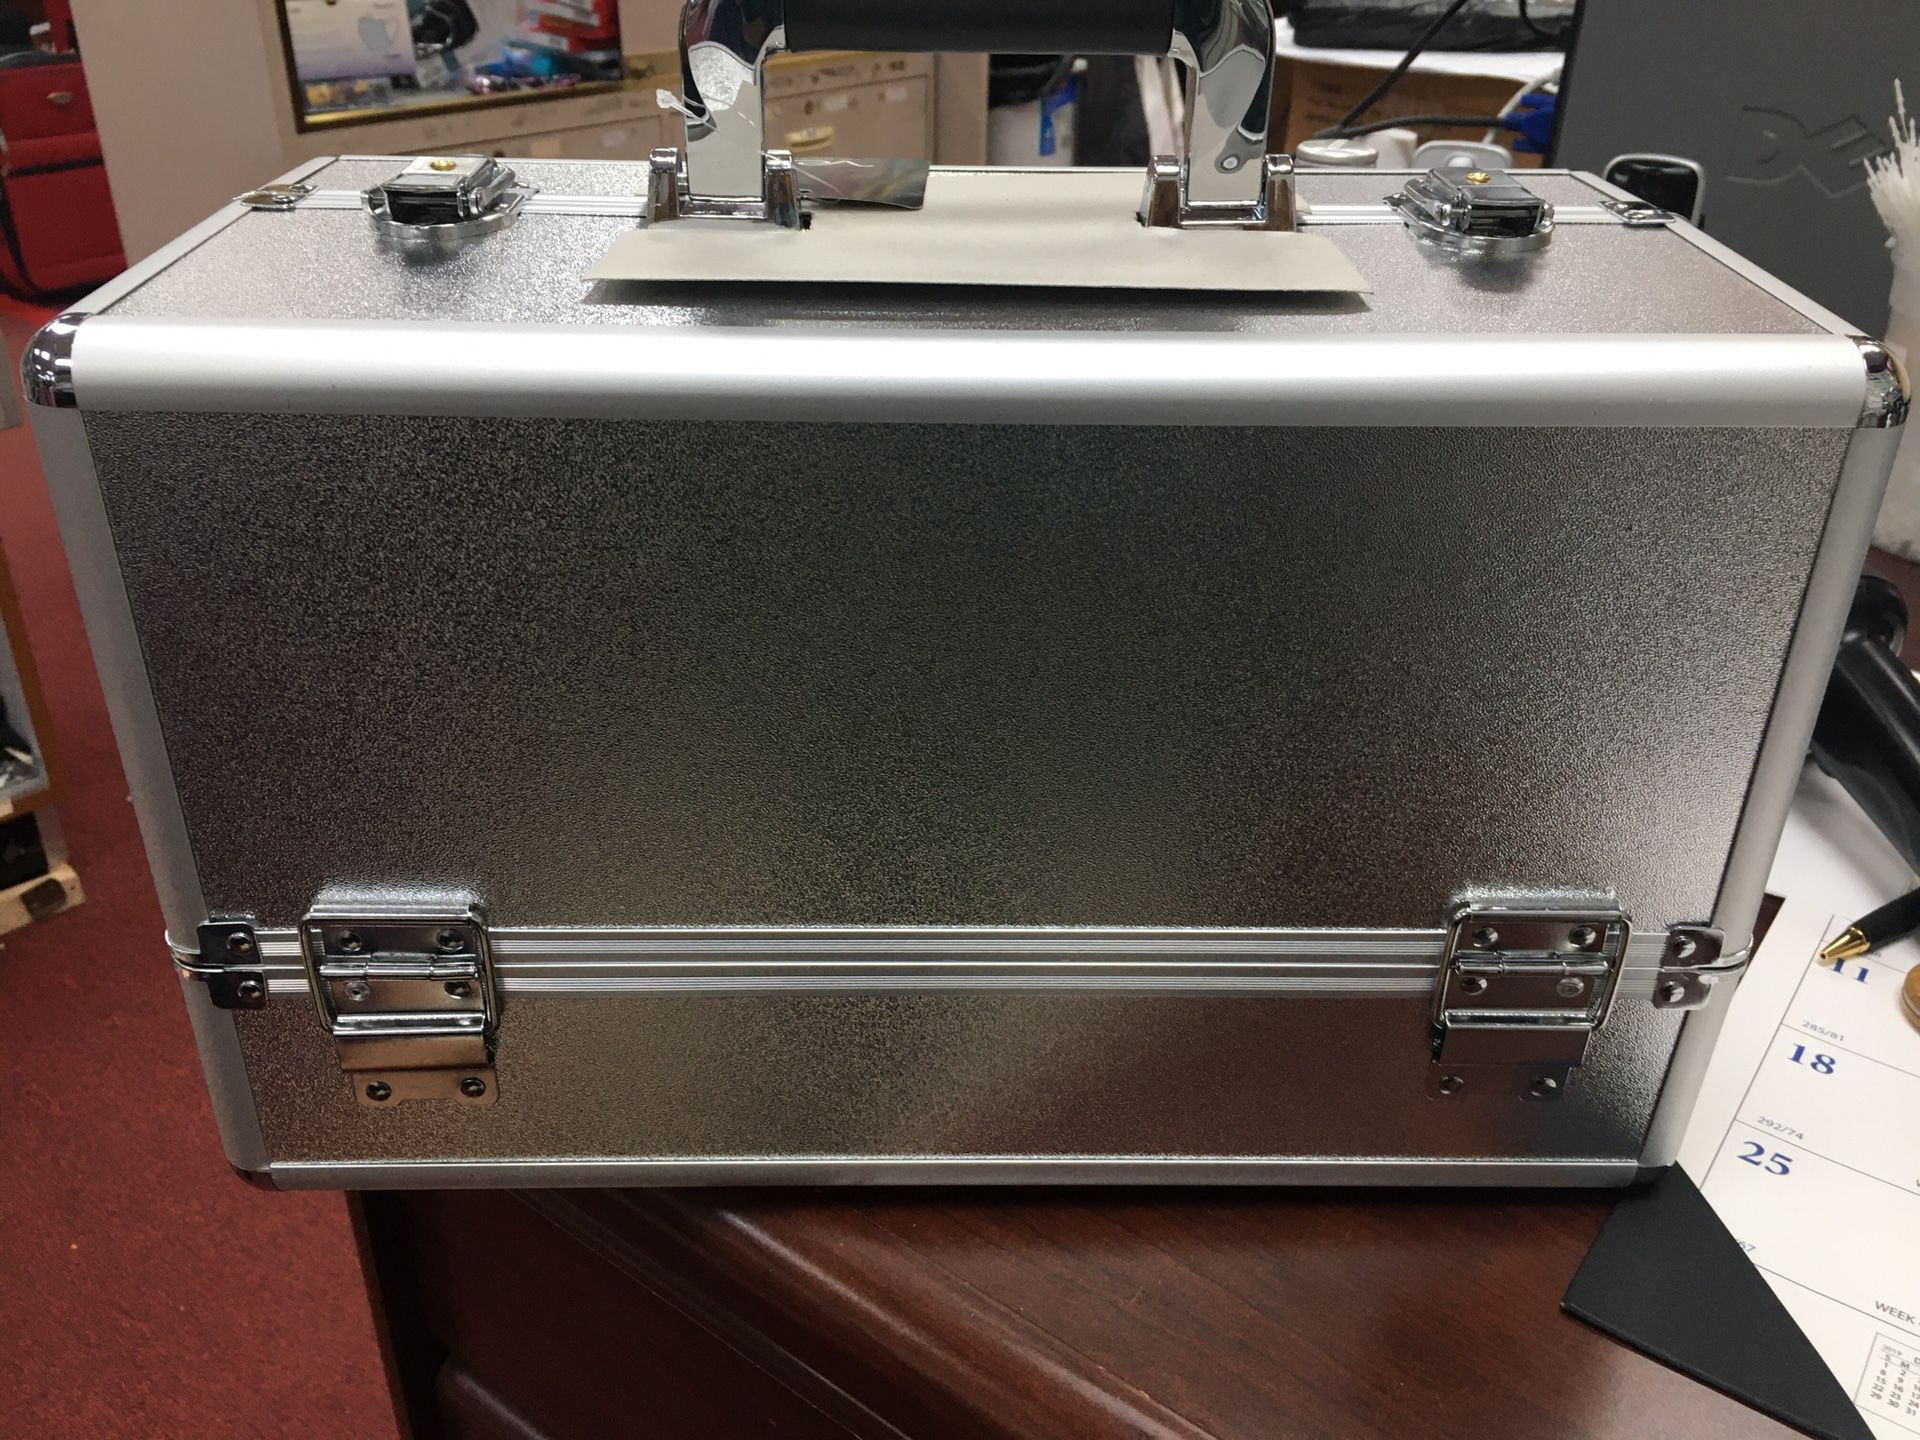 Makeup case silver and black color